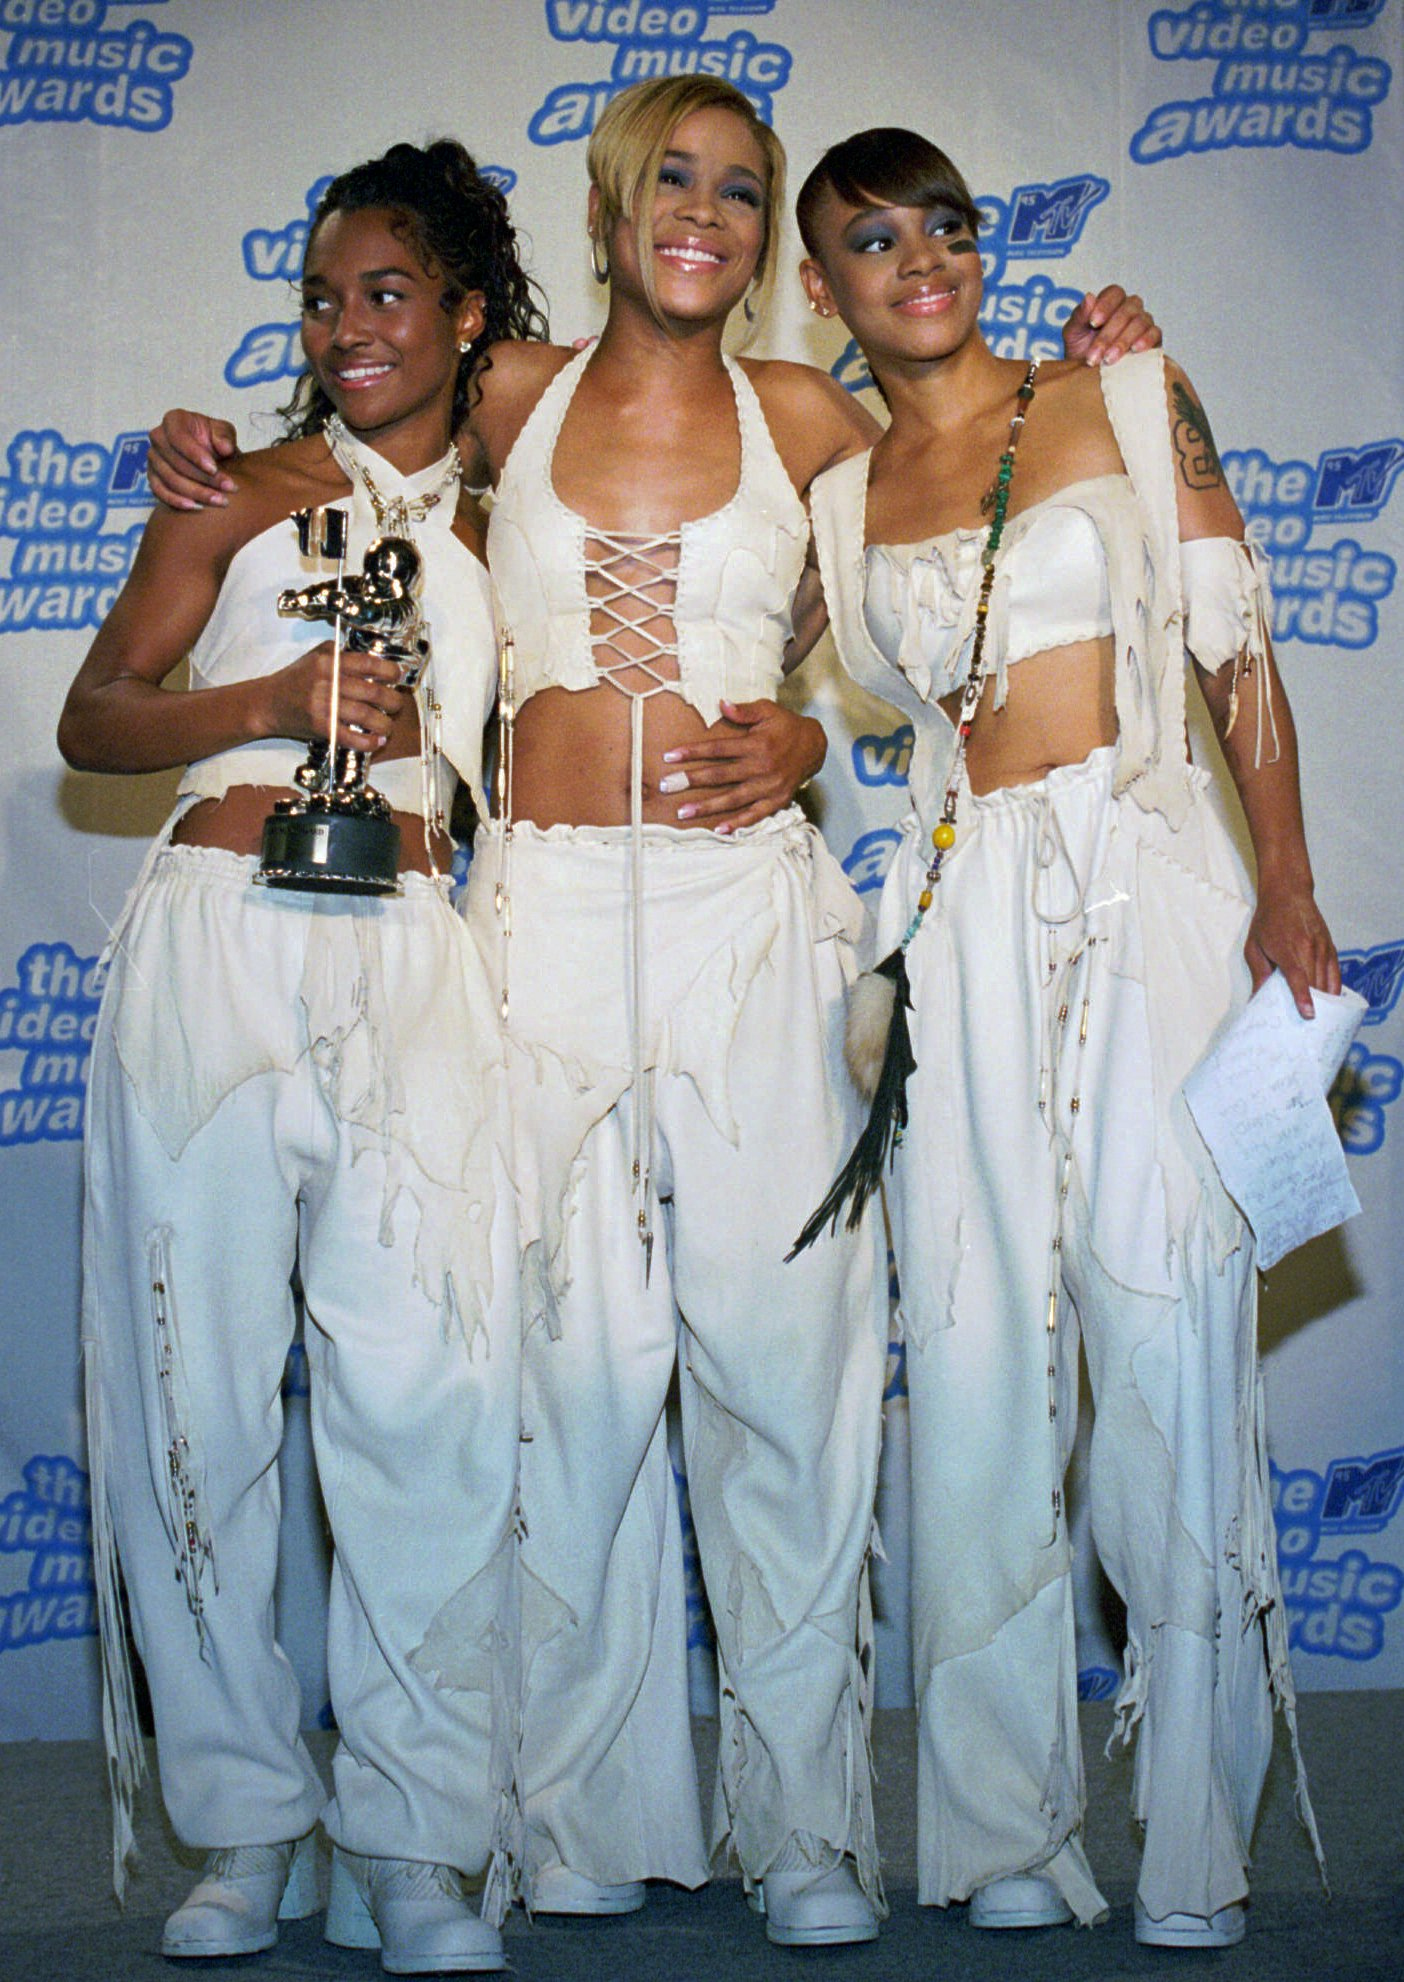 Chilli, T-Boz, and Left Eye at the 12th Annual MTV Video Music Awards on Sept. 7, 1995. (AP Photo/Paul Hurschmann, File)